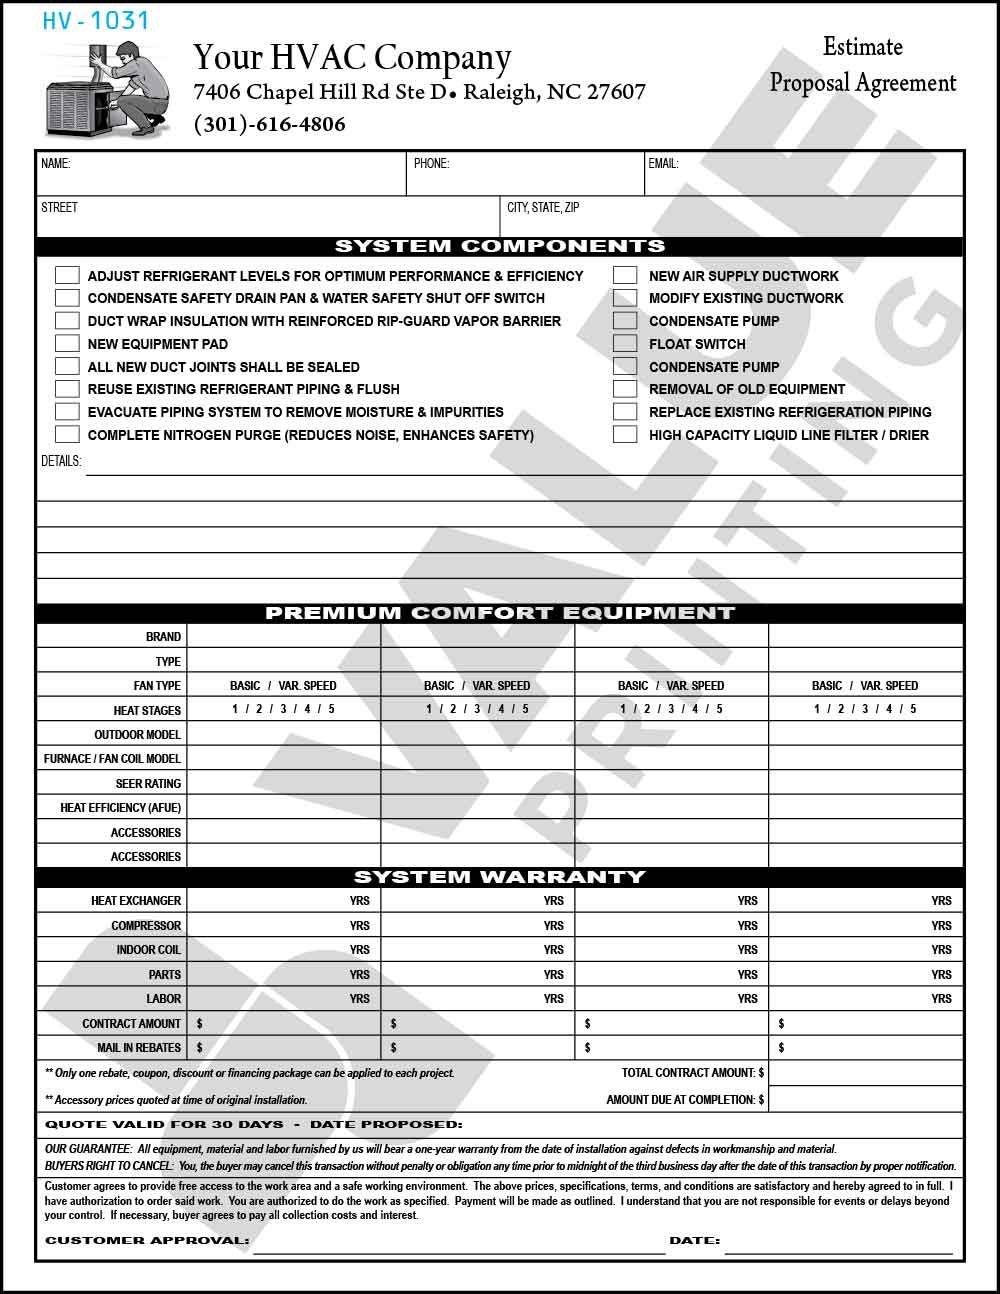 Proposal hvac systems improvement submitted by: Hvac Company Proposal Templates Contract Template